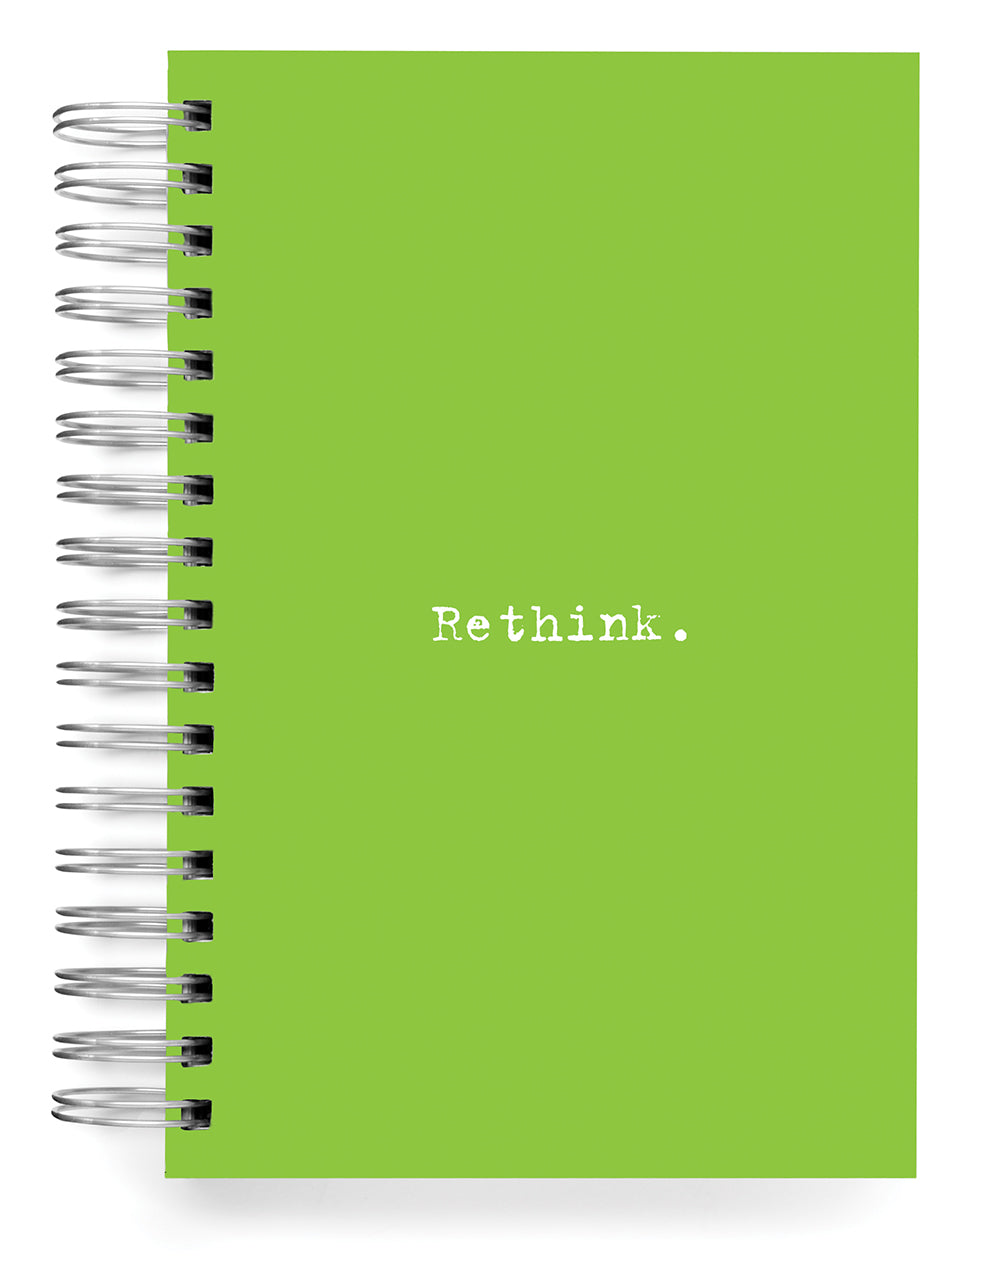 Rethink green 80 sheet lite